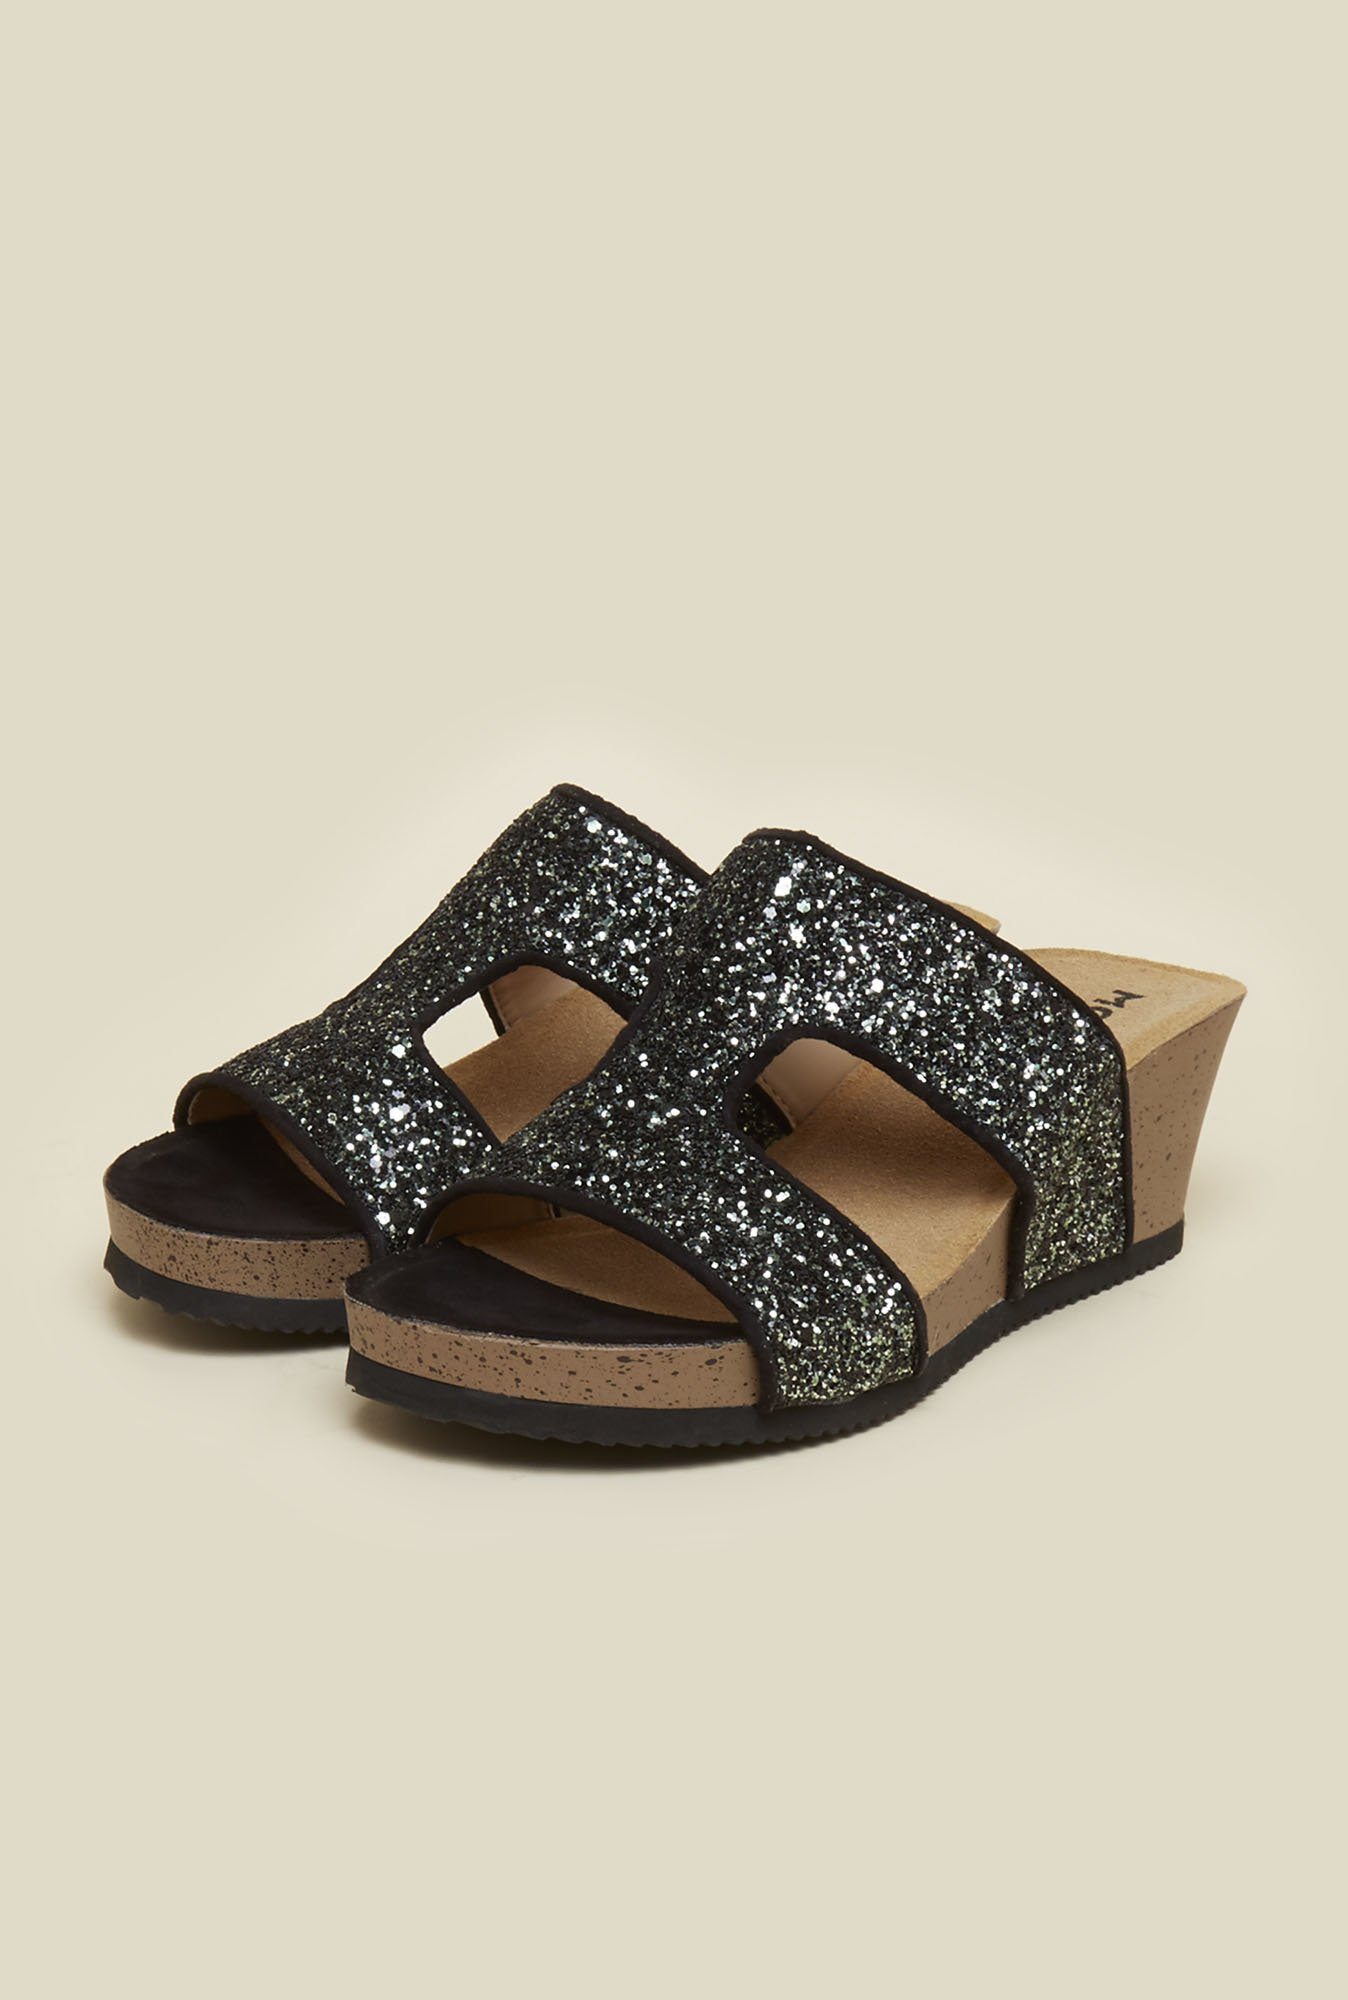 Mochi Black Wedge Sandals